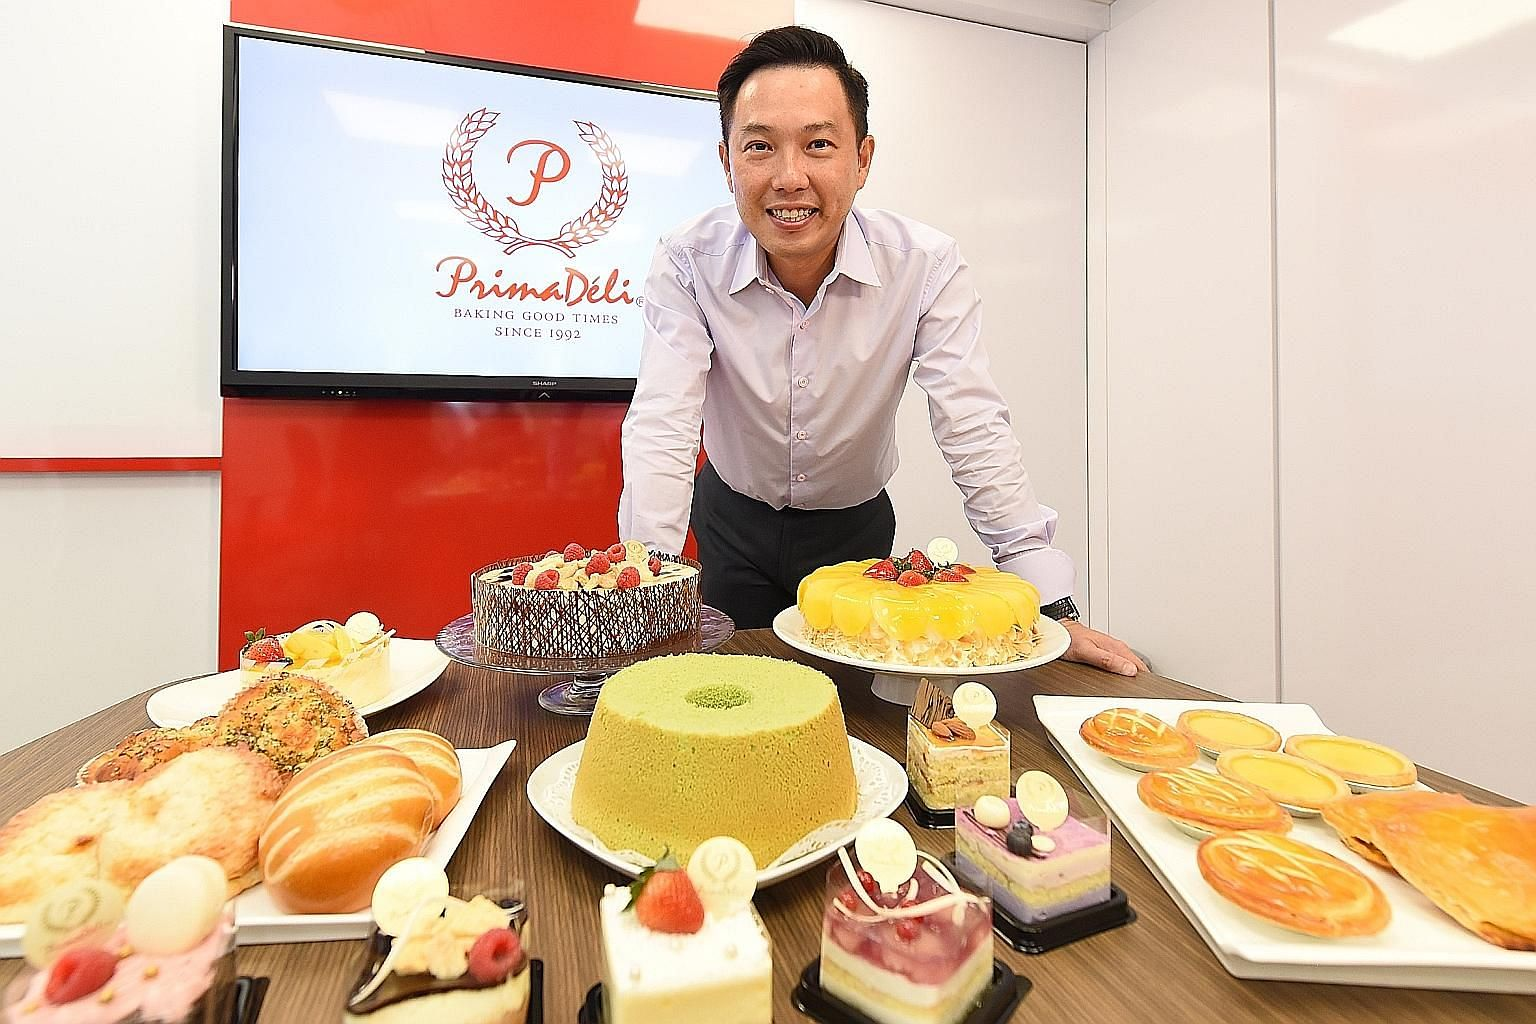 PrimaDeli general manager George Lim with some of the products made by the firm that are sold by its franchisees. The company's franchise model differed from others in that the idea was for existing bakeries to take on the PrimaDeli brand and sell pr